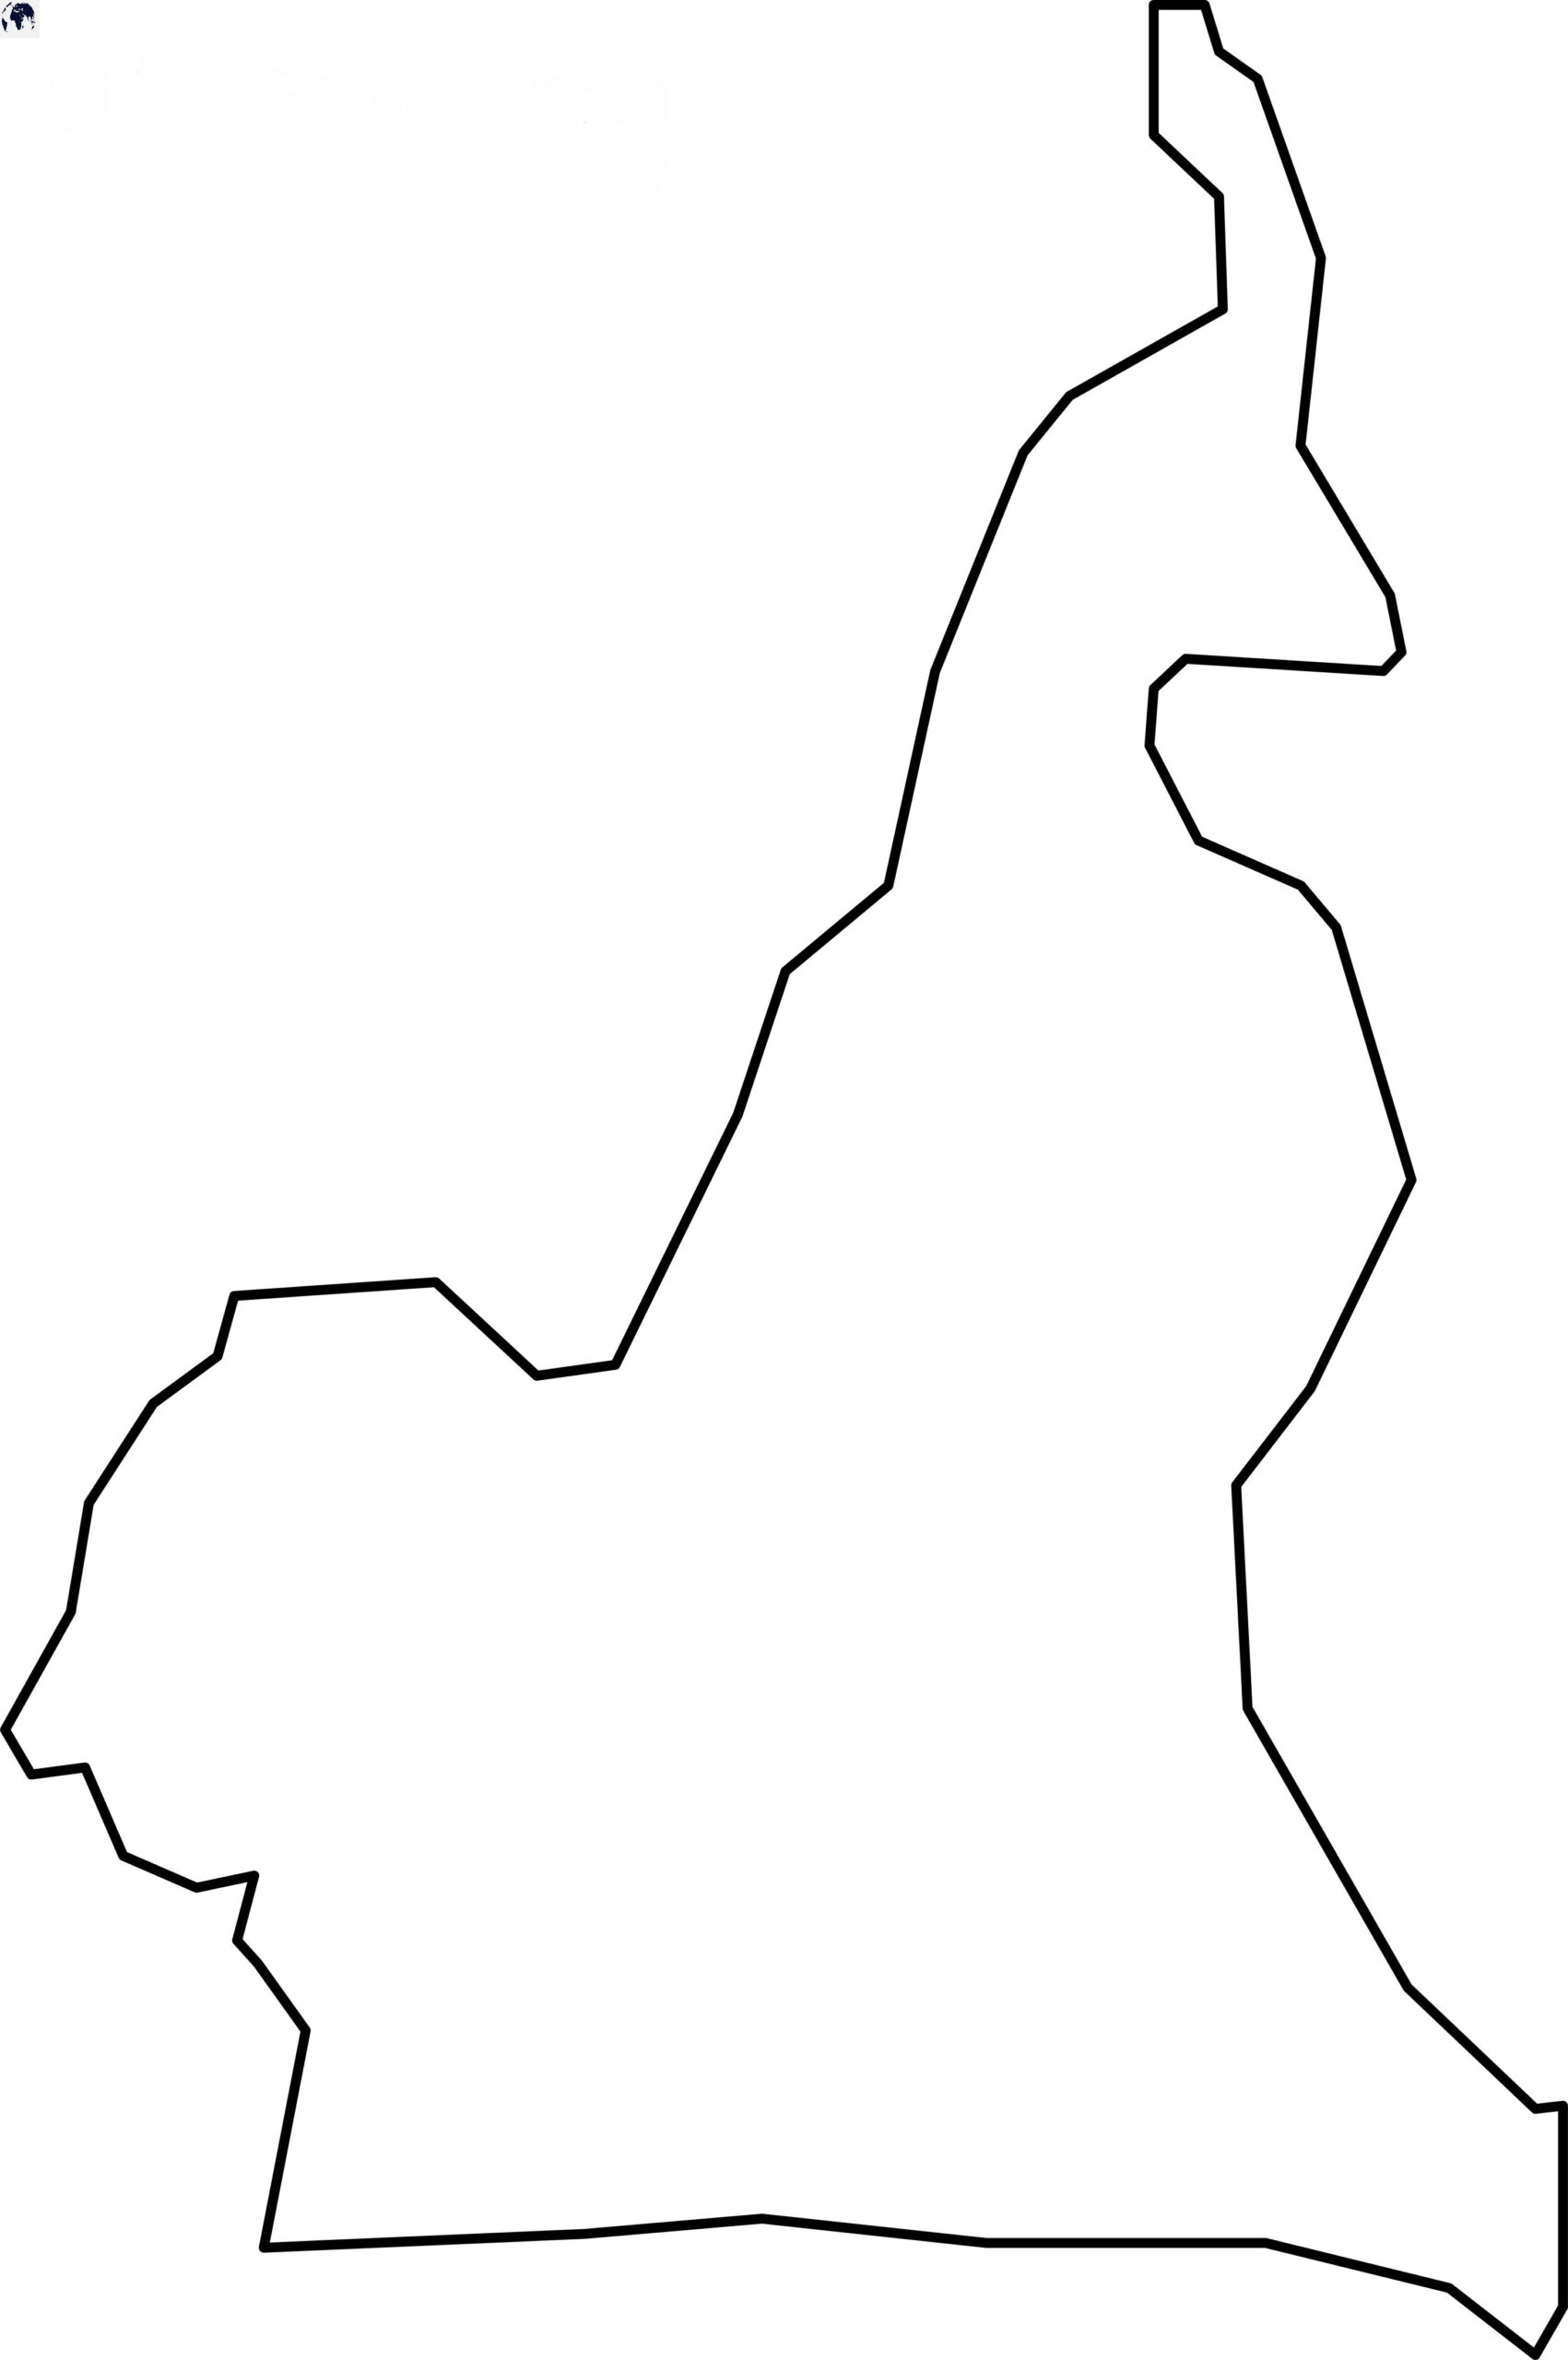 Blank Cameroon Map - Outline